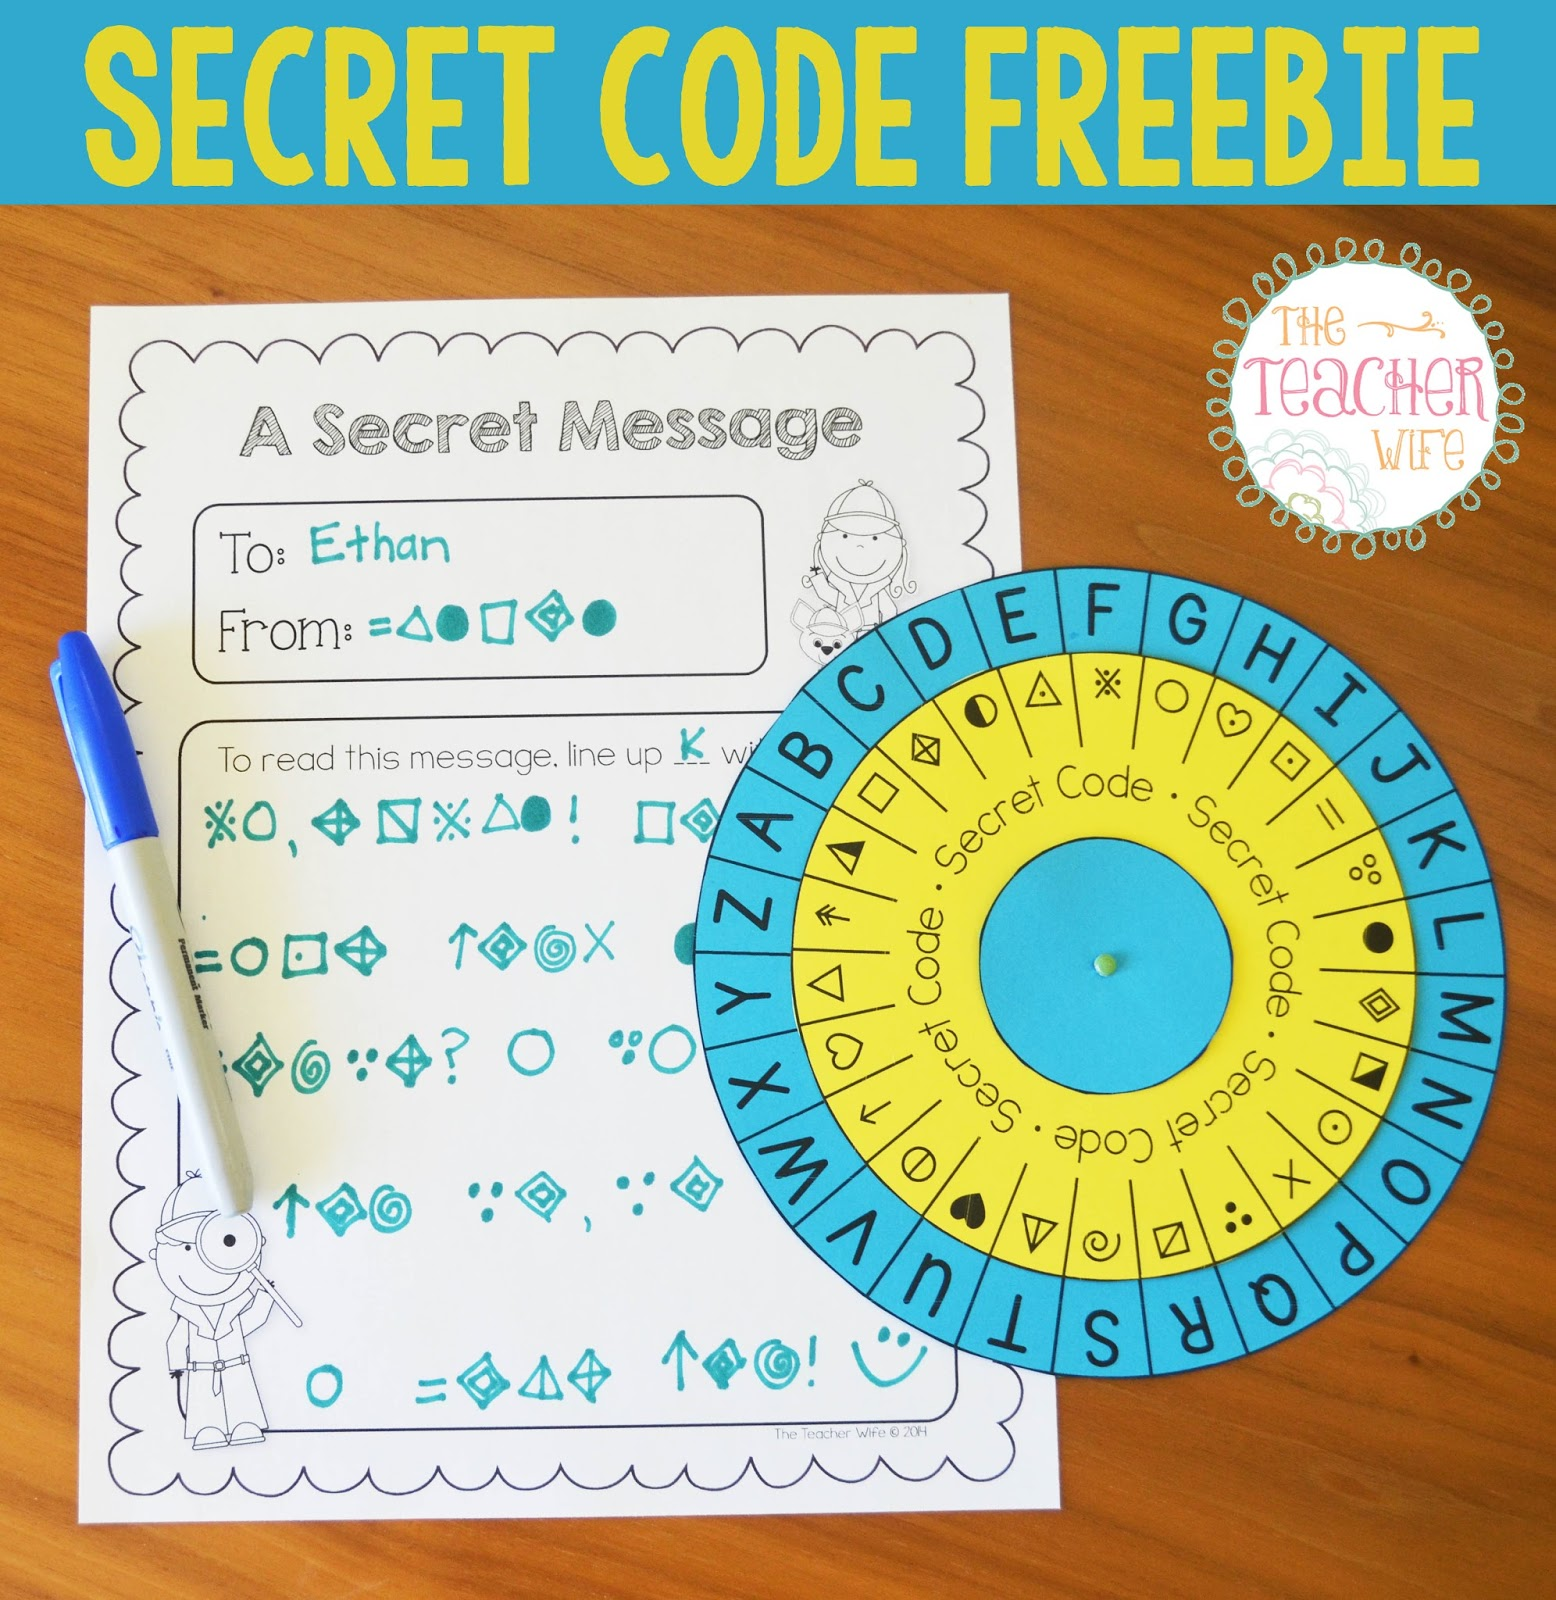 The Teacher Wife Secret Code Freebie